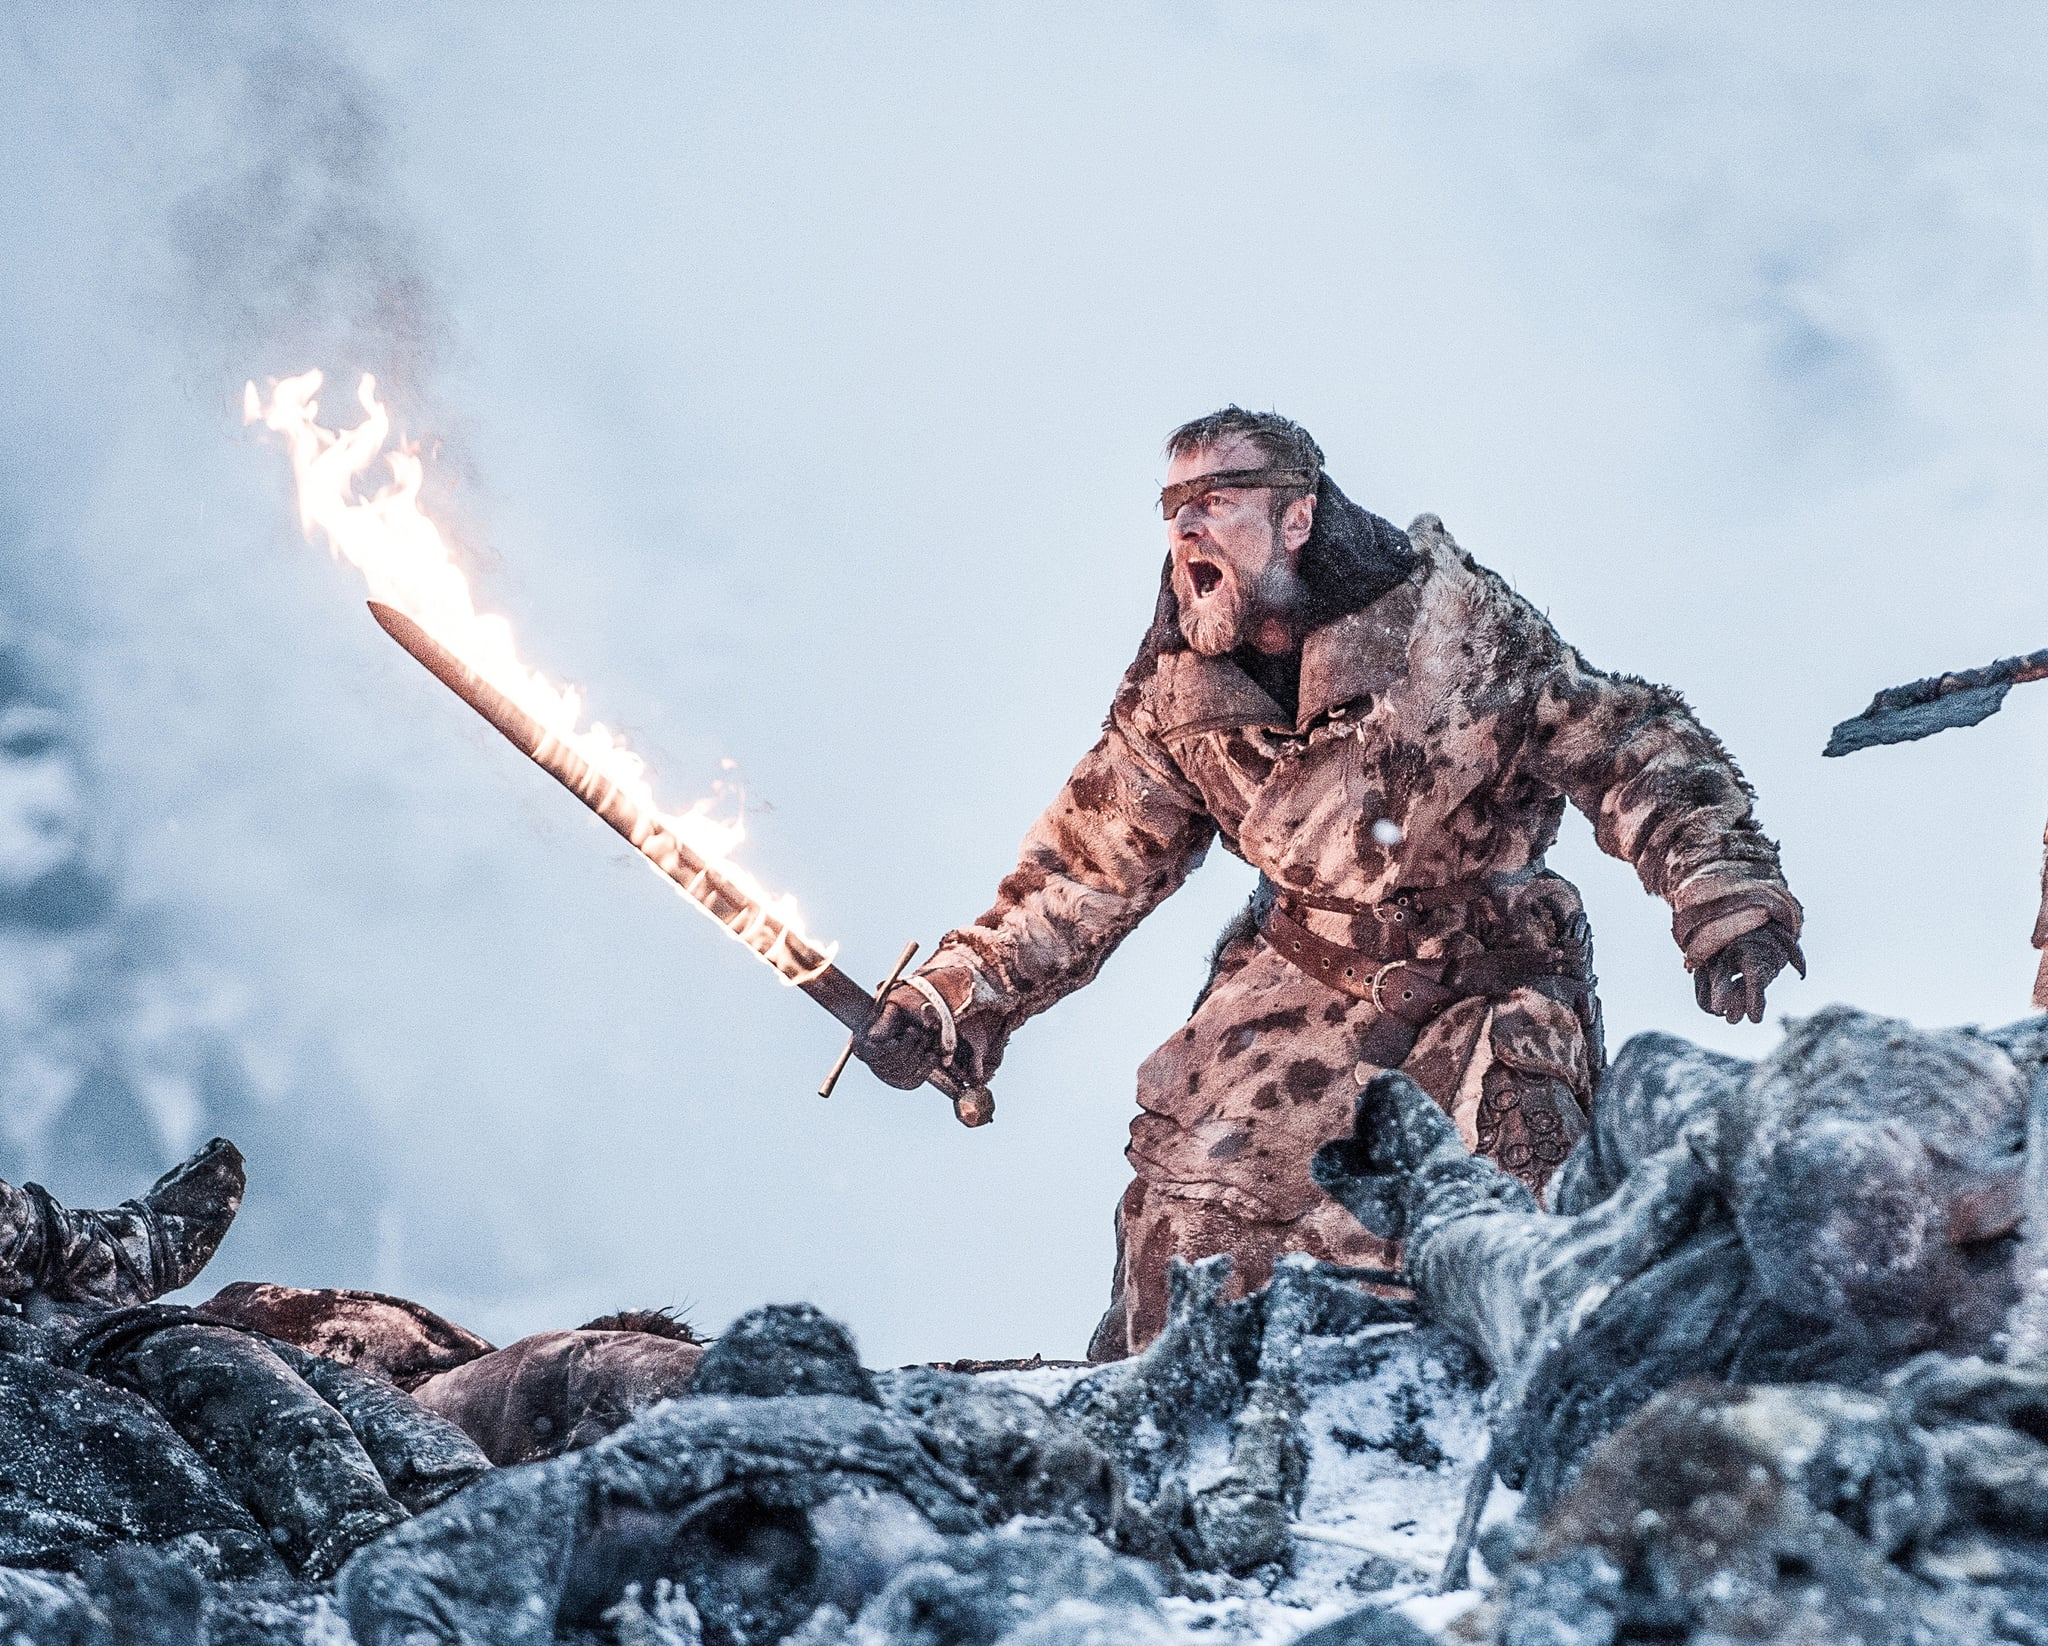 How Does Beric Make His Sword Catch Fire on Game of Thrones